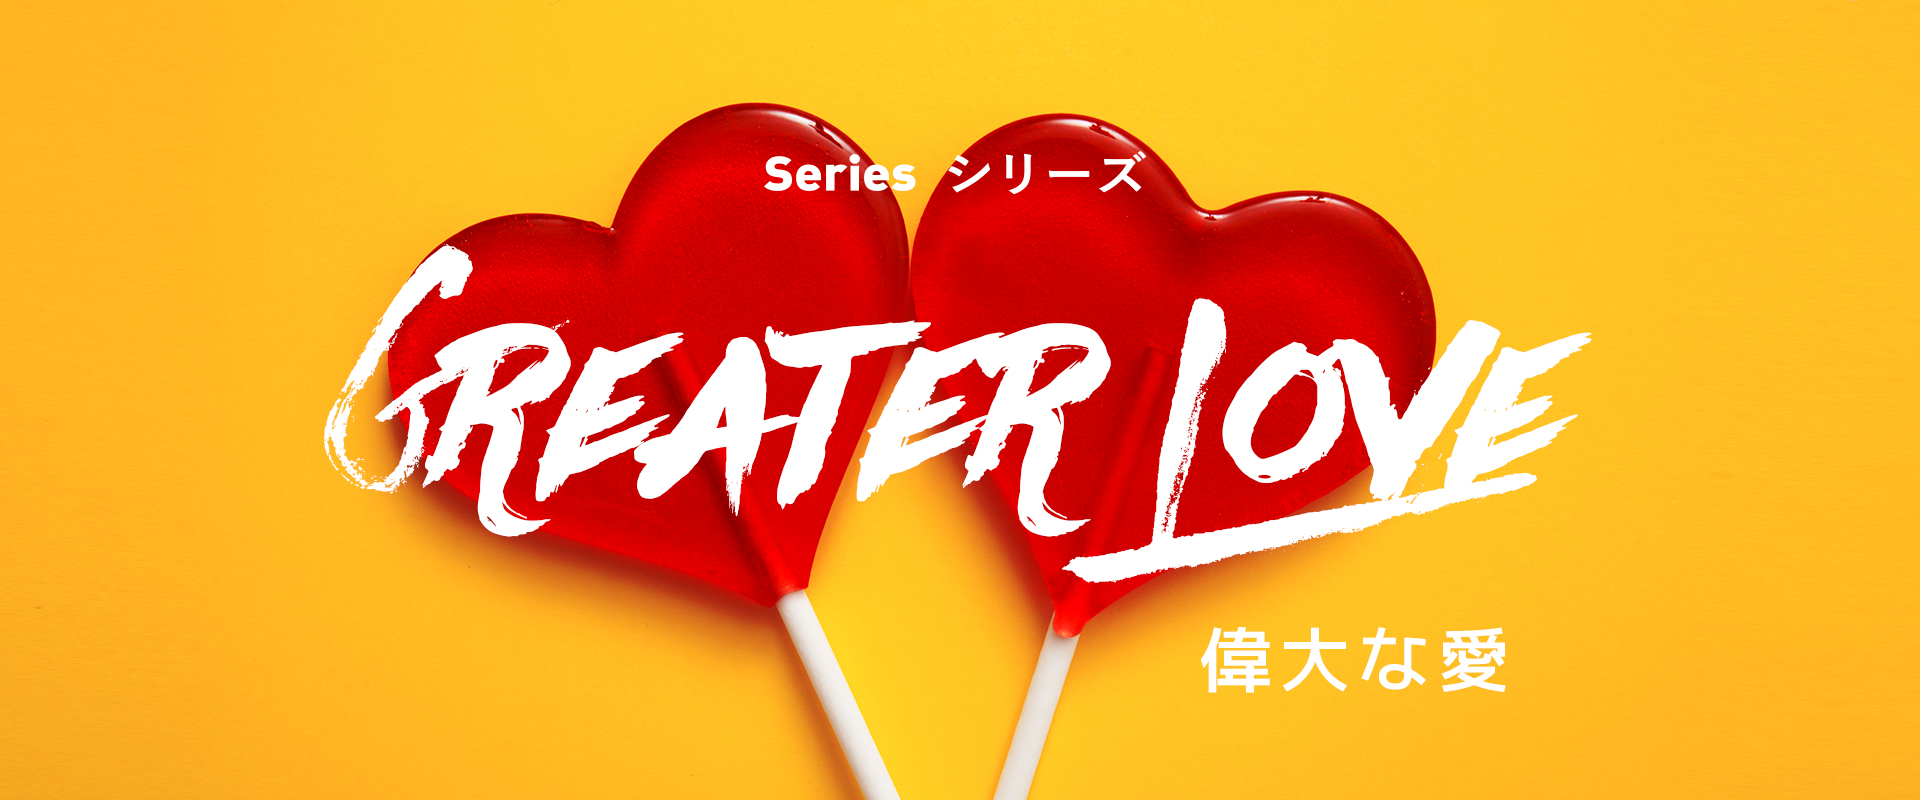 Message Series Greater Love メッセージシリーズ: 偉大な愛